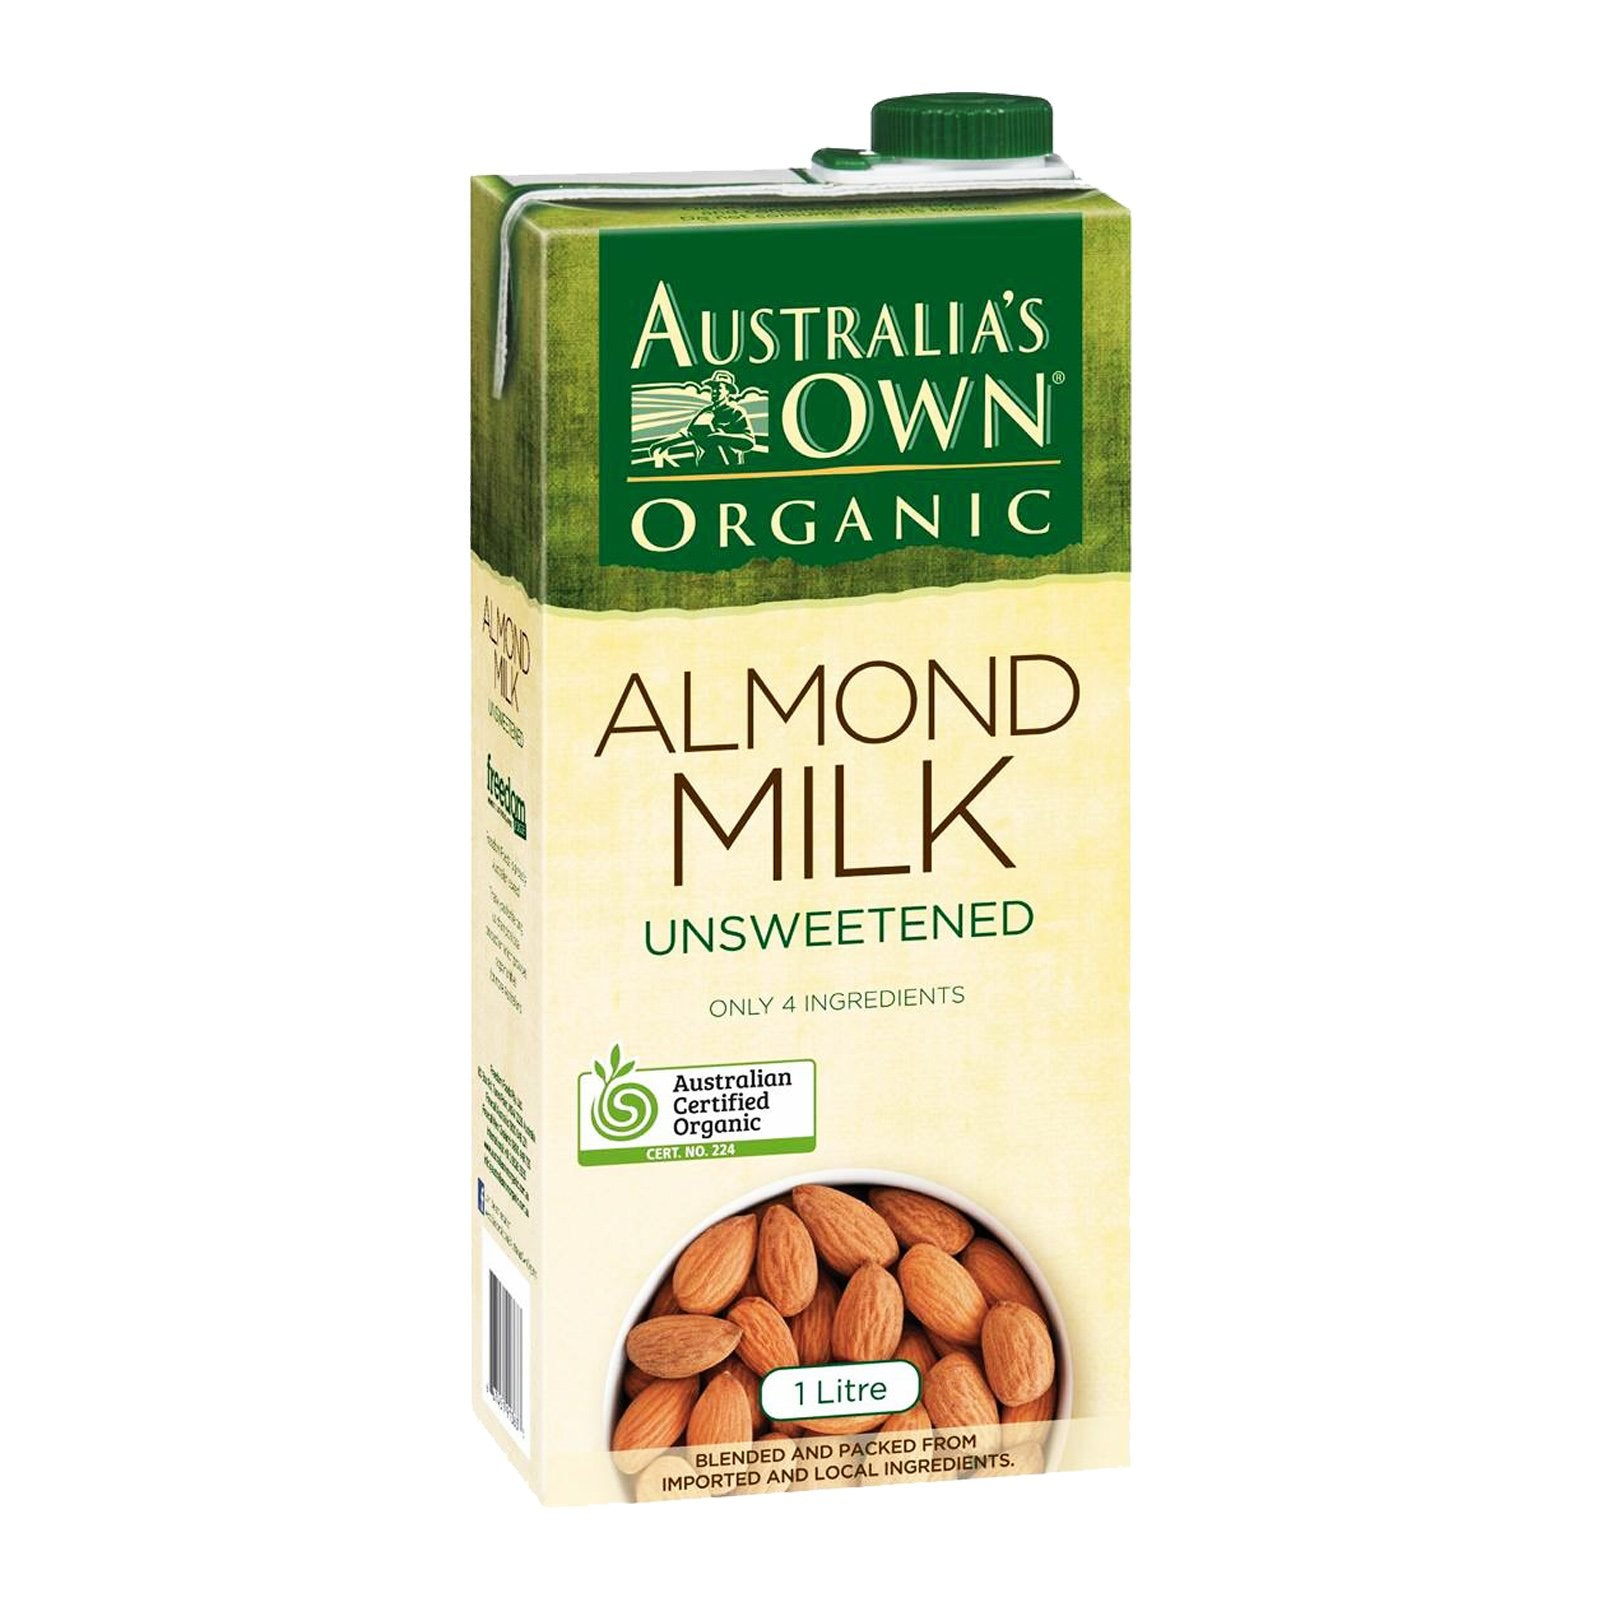 Australia's Own Almond Milk - rabbit-carrot-gun-market.com